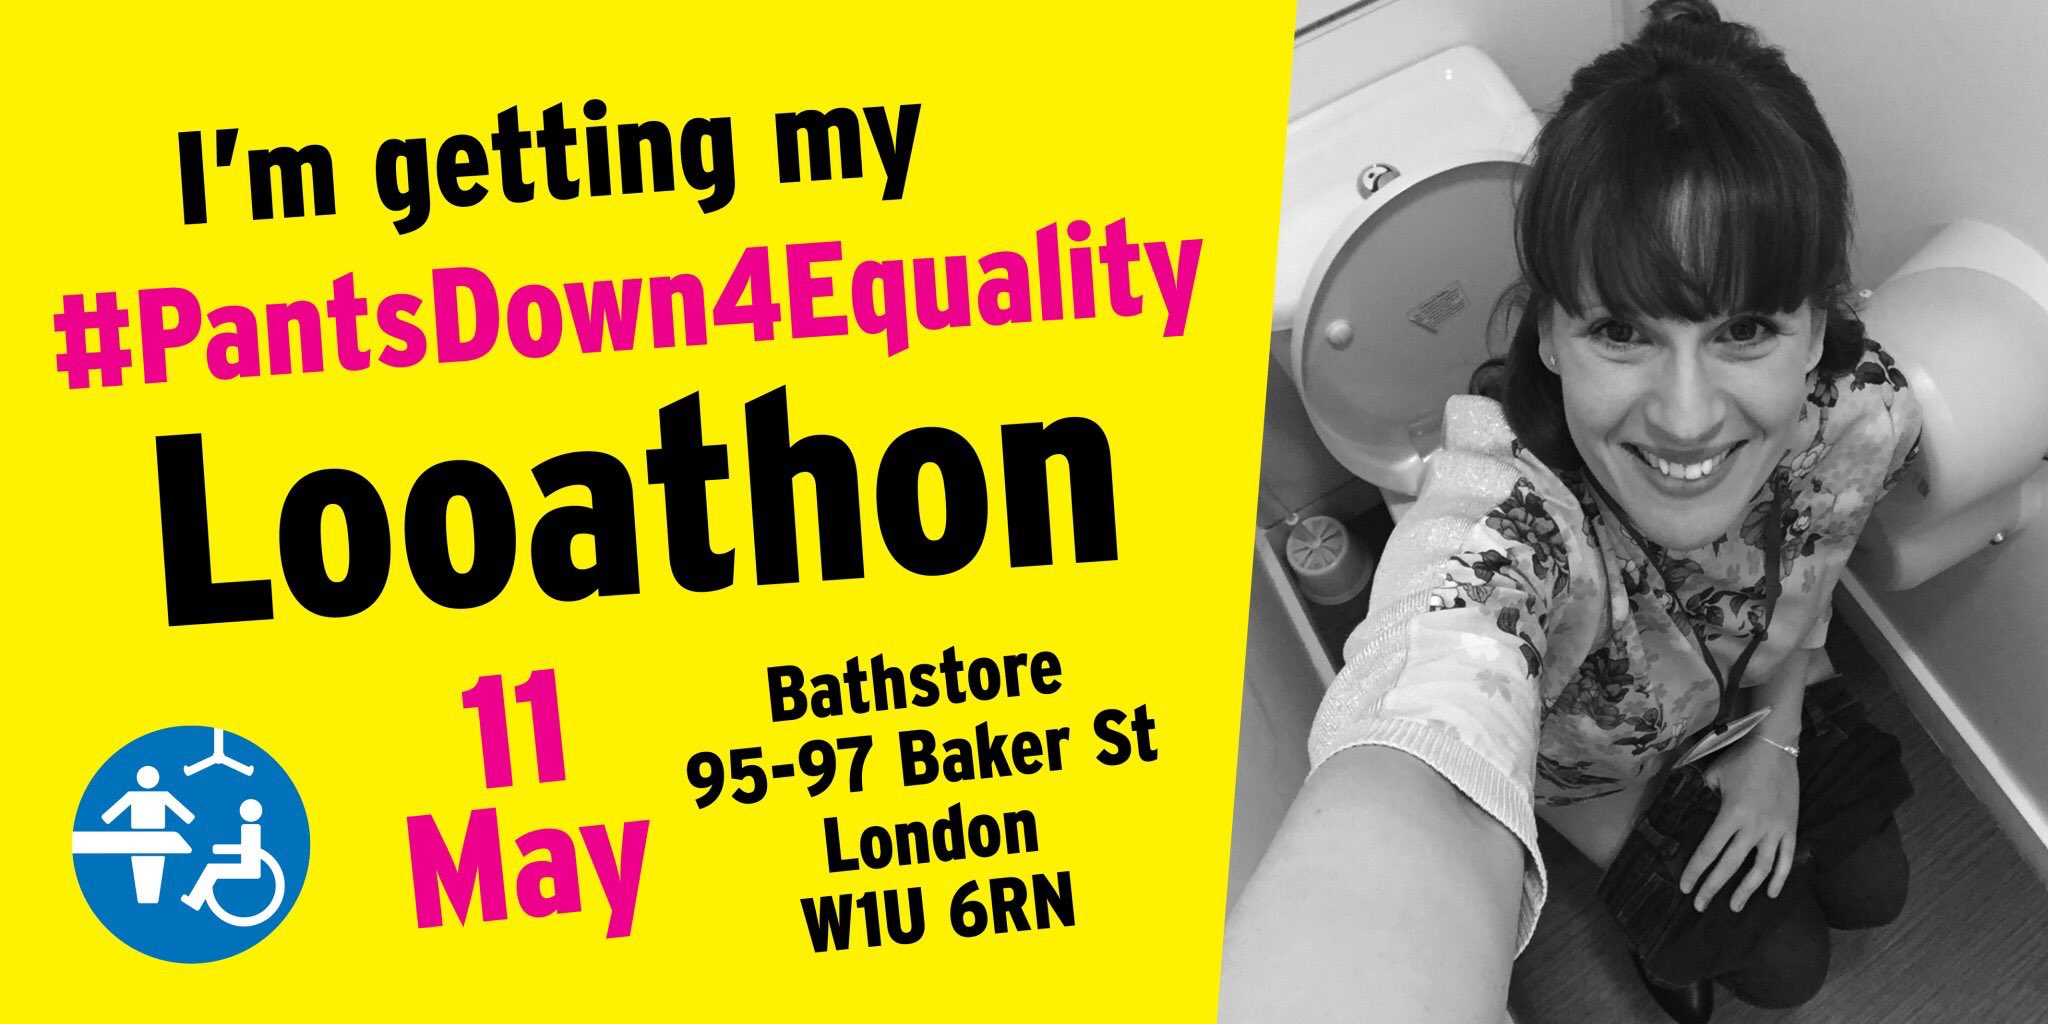 Advert for pants down for equality Looathon on 11th of May